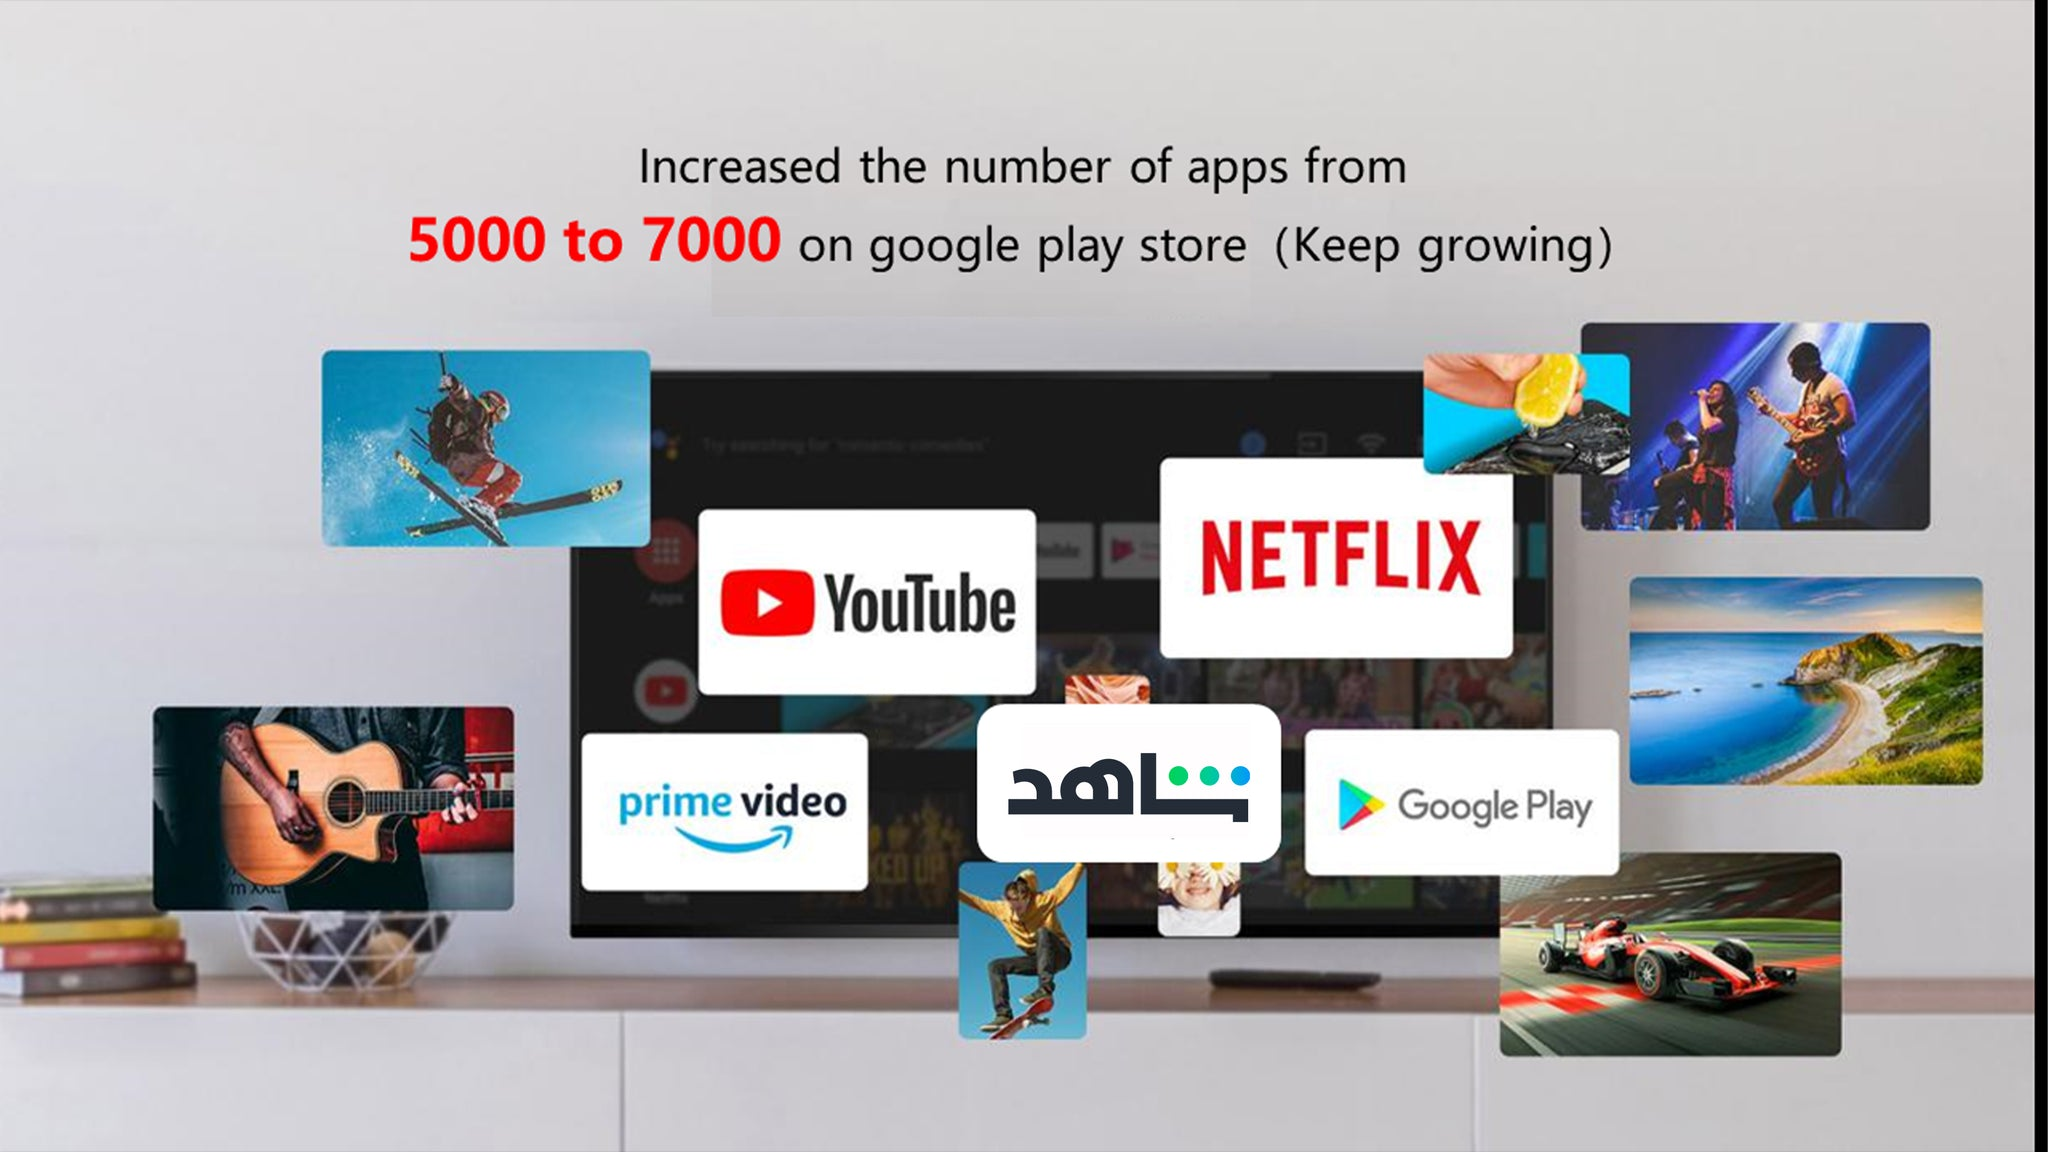 Increased the number of apps from  5000 to 7000 on google play store(Keep growing)